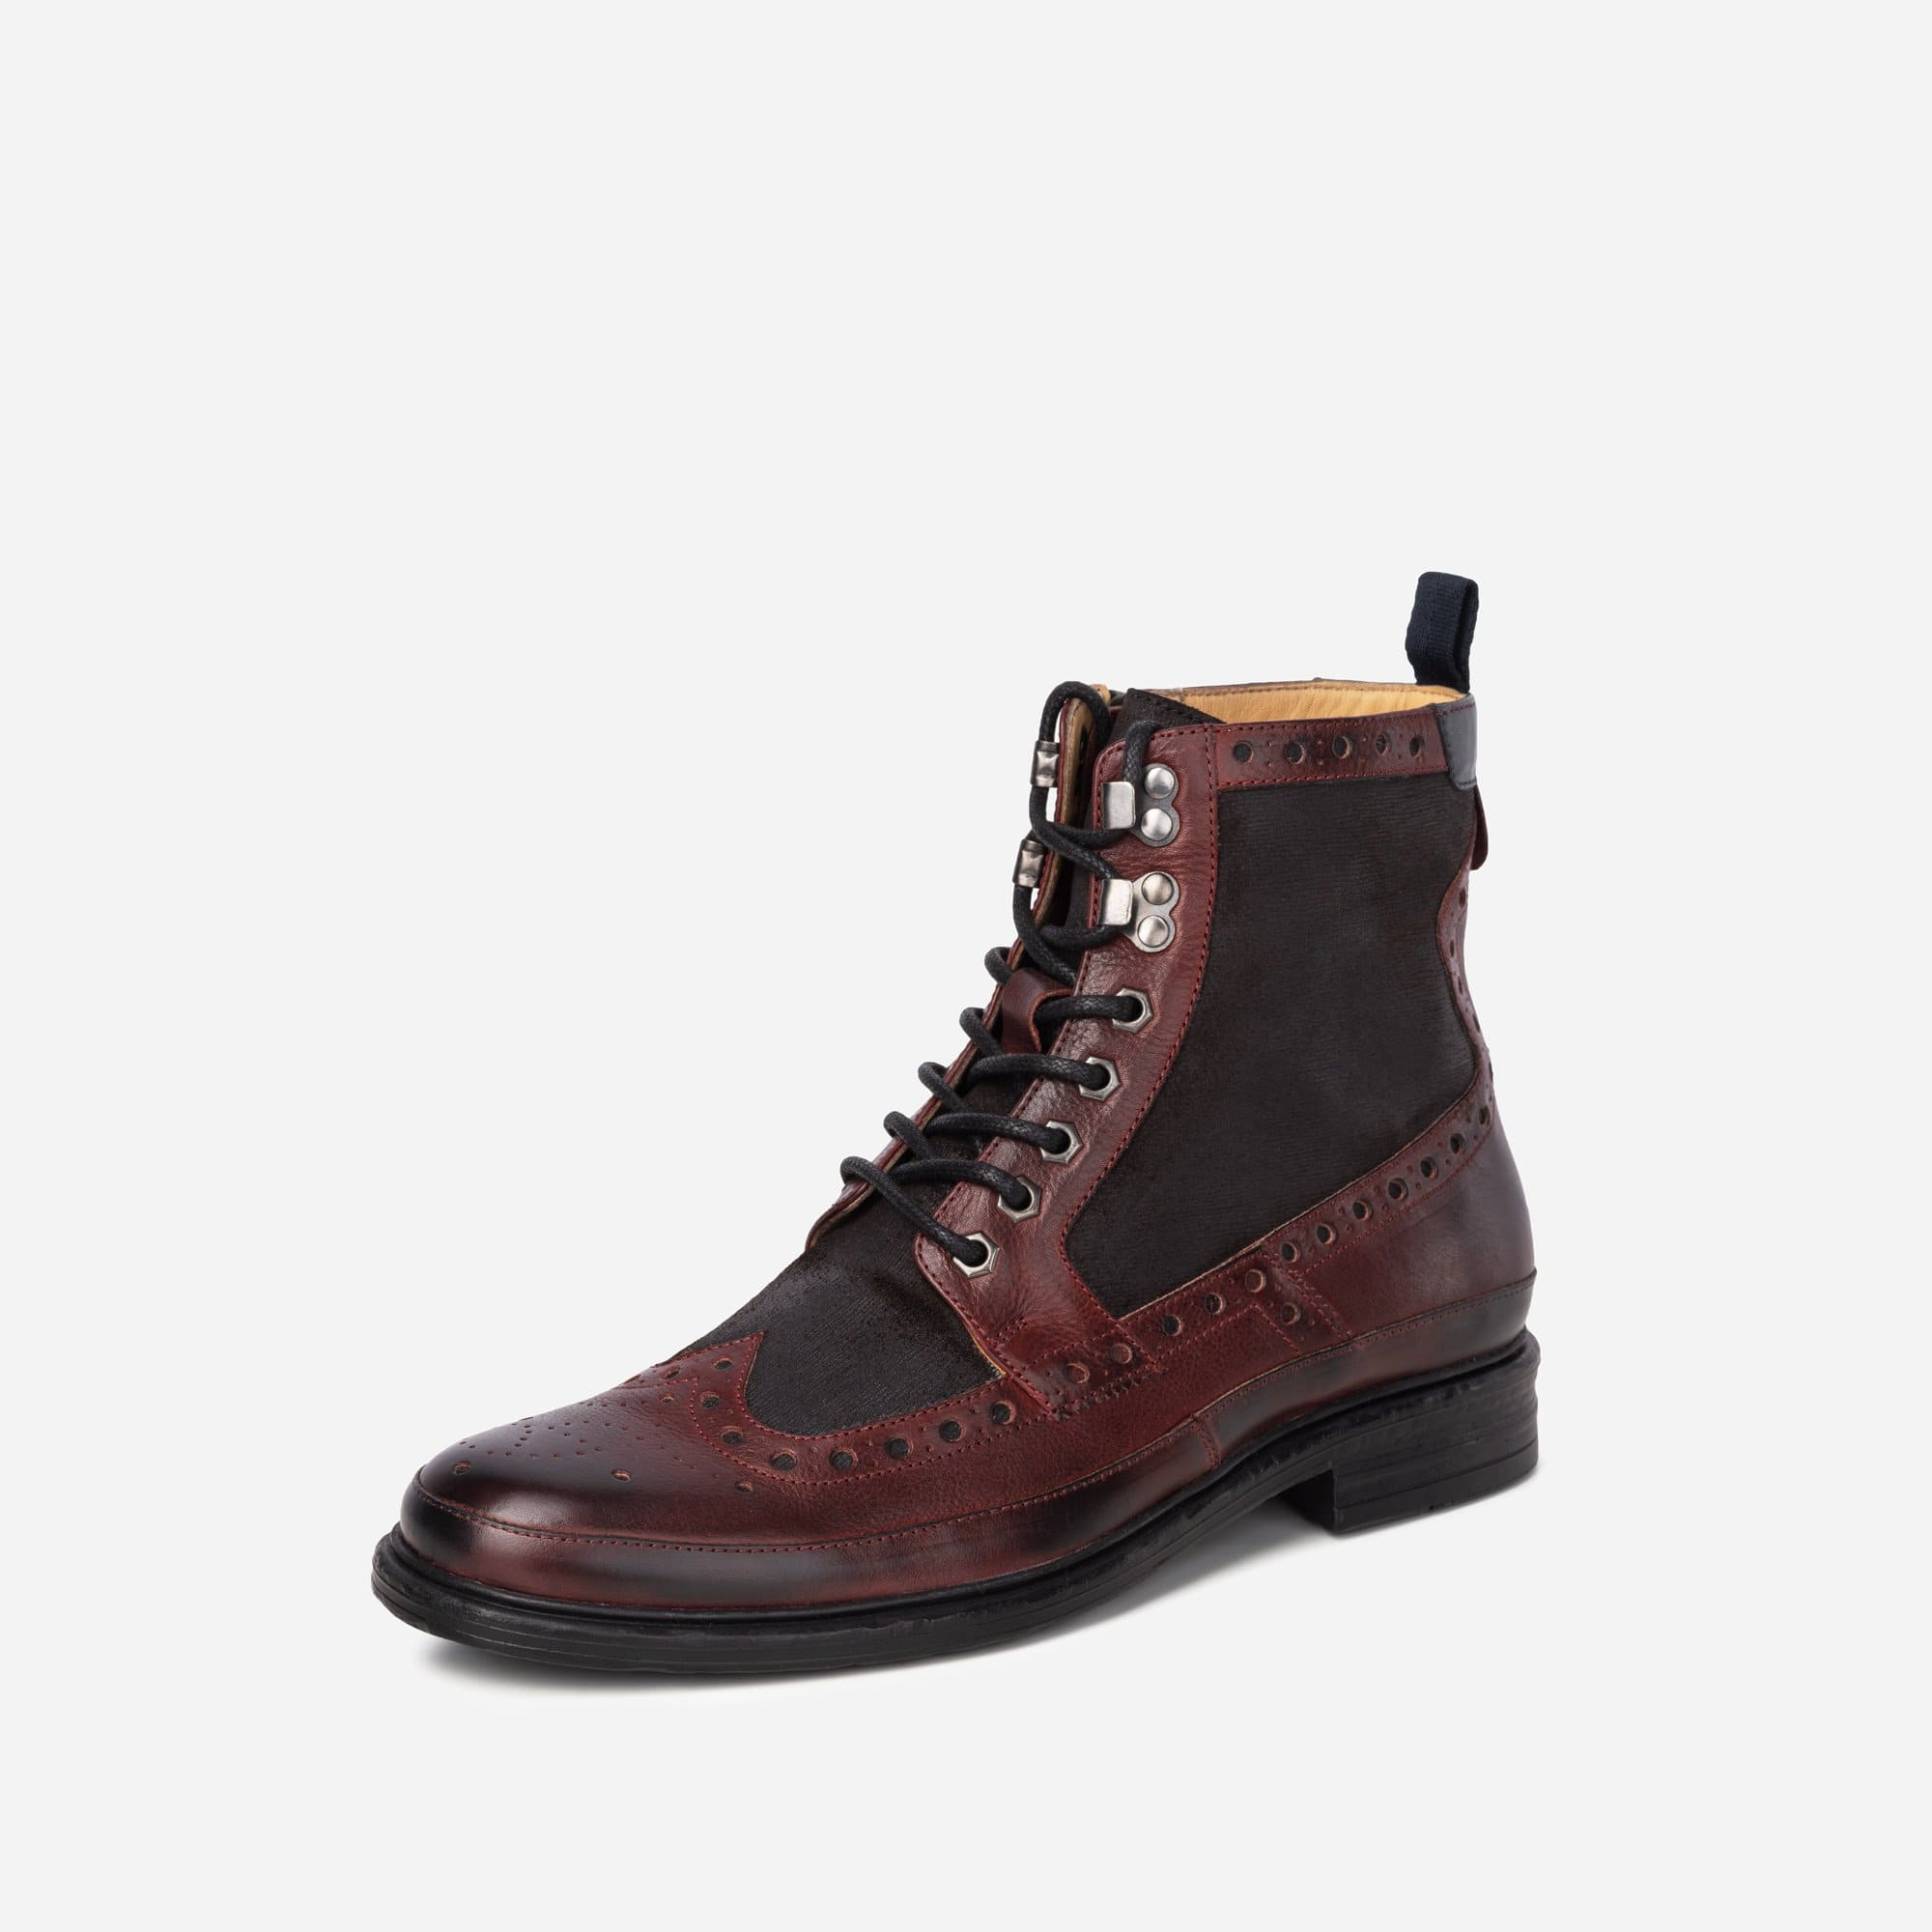 Goodwin Smith Footwear MENS GS ARTISAN  BENNETT BORDO BLACK BROGUE BOOT